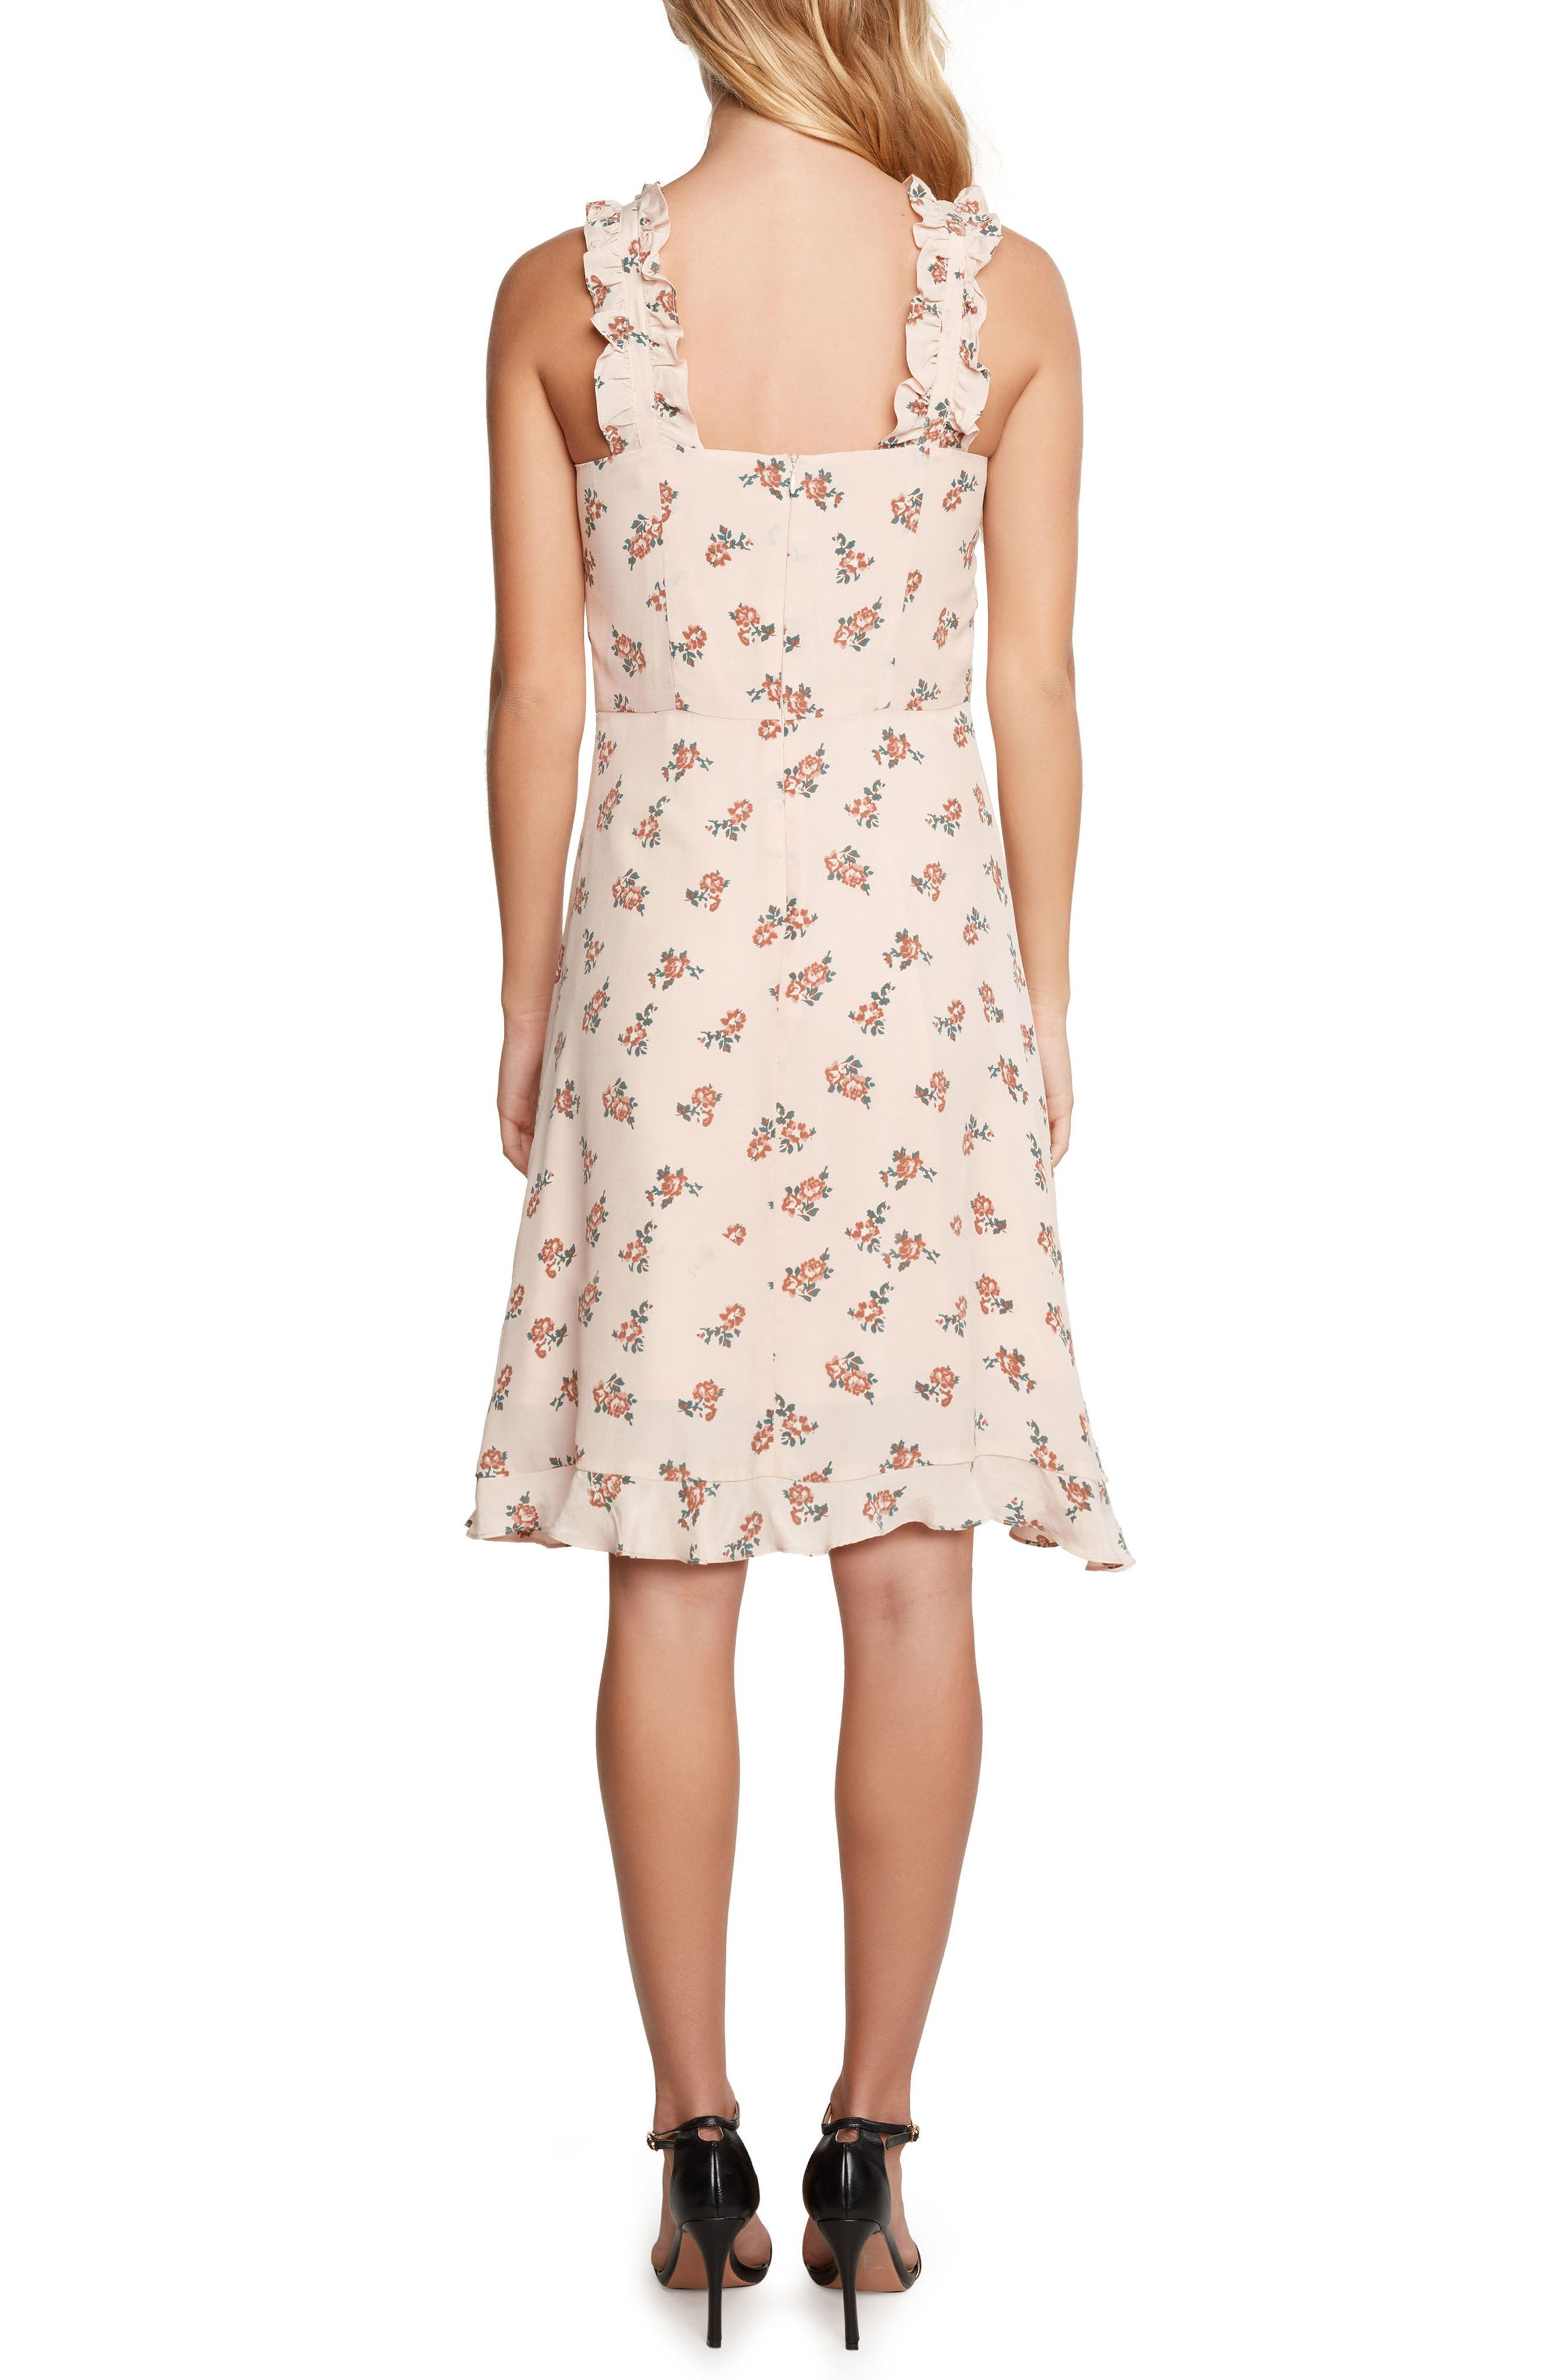 WILLOW & CLAY,                             Ruffle Dress,                             Alternate thumbnail 2, color,                             950